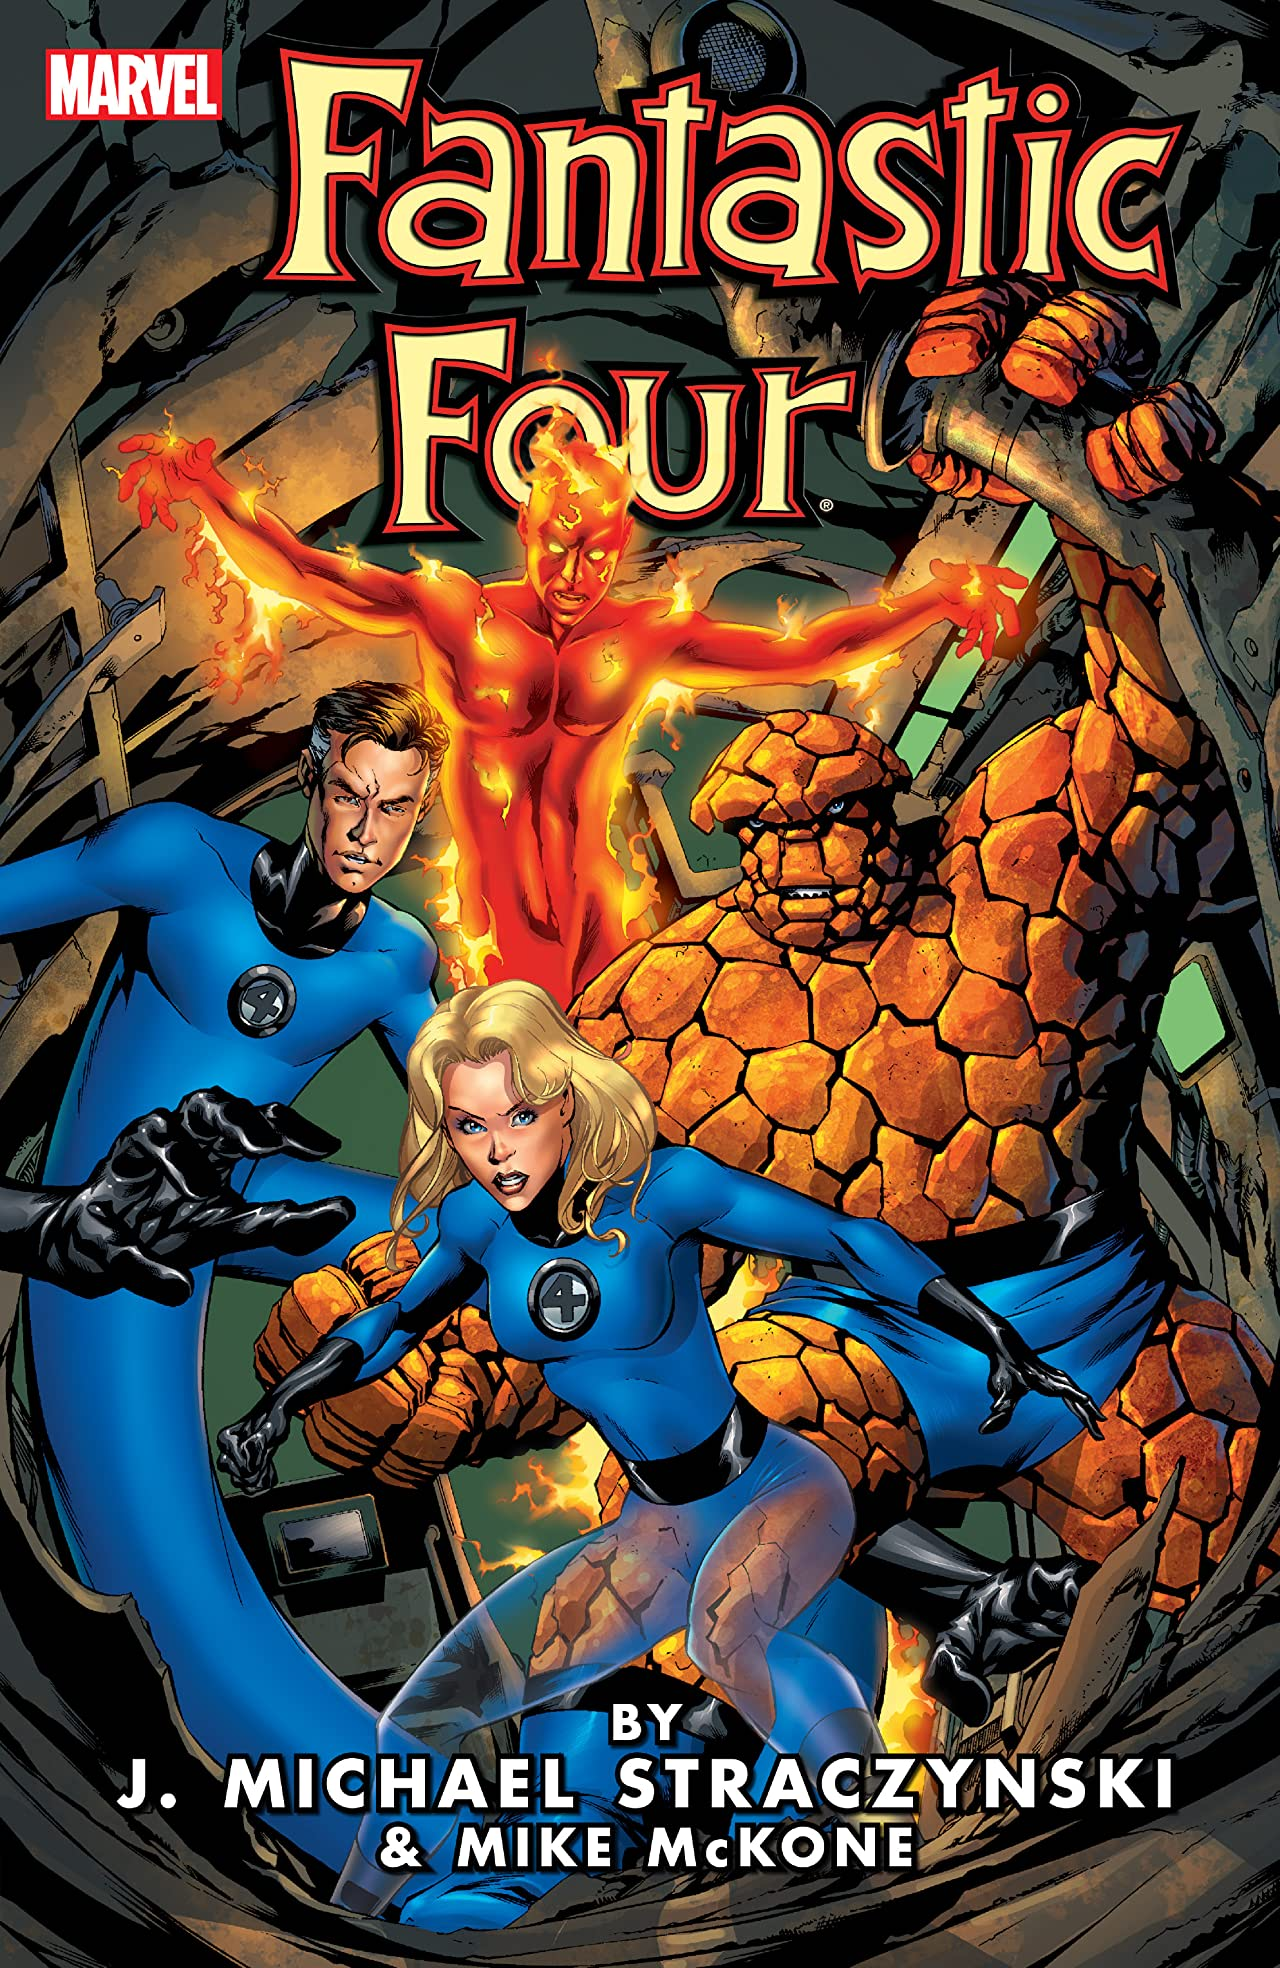 Fantastic Four by J. Michael Straczynski